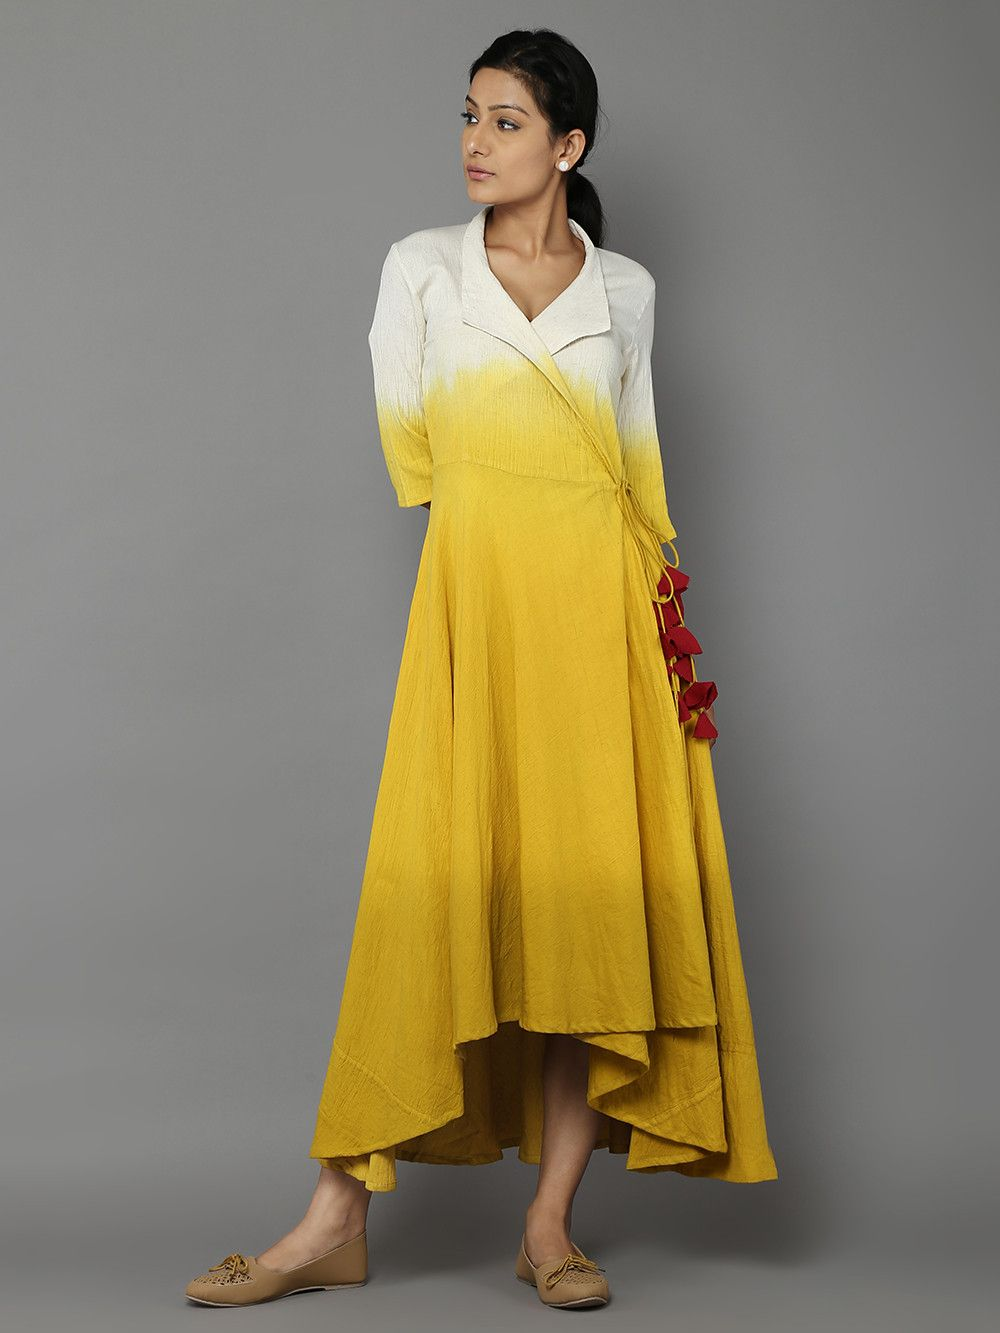 Description itus a high low yellow shaded angarakha dress with red